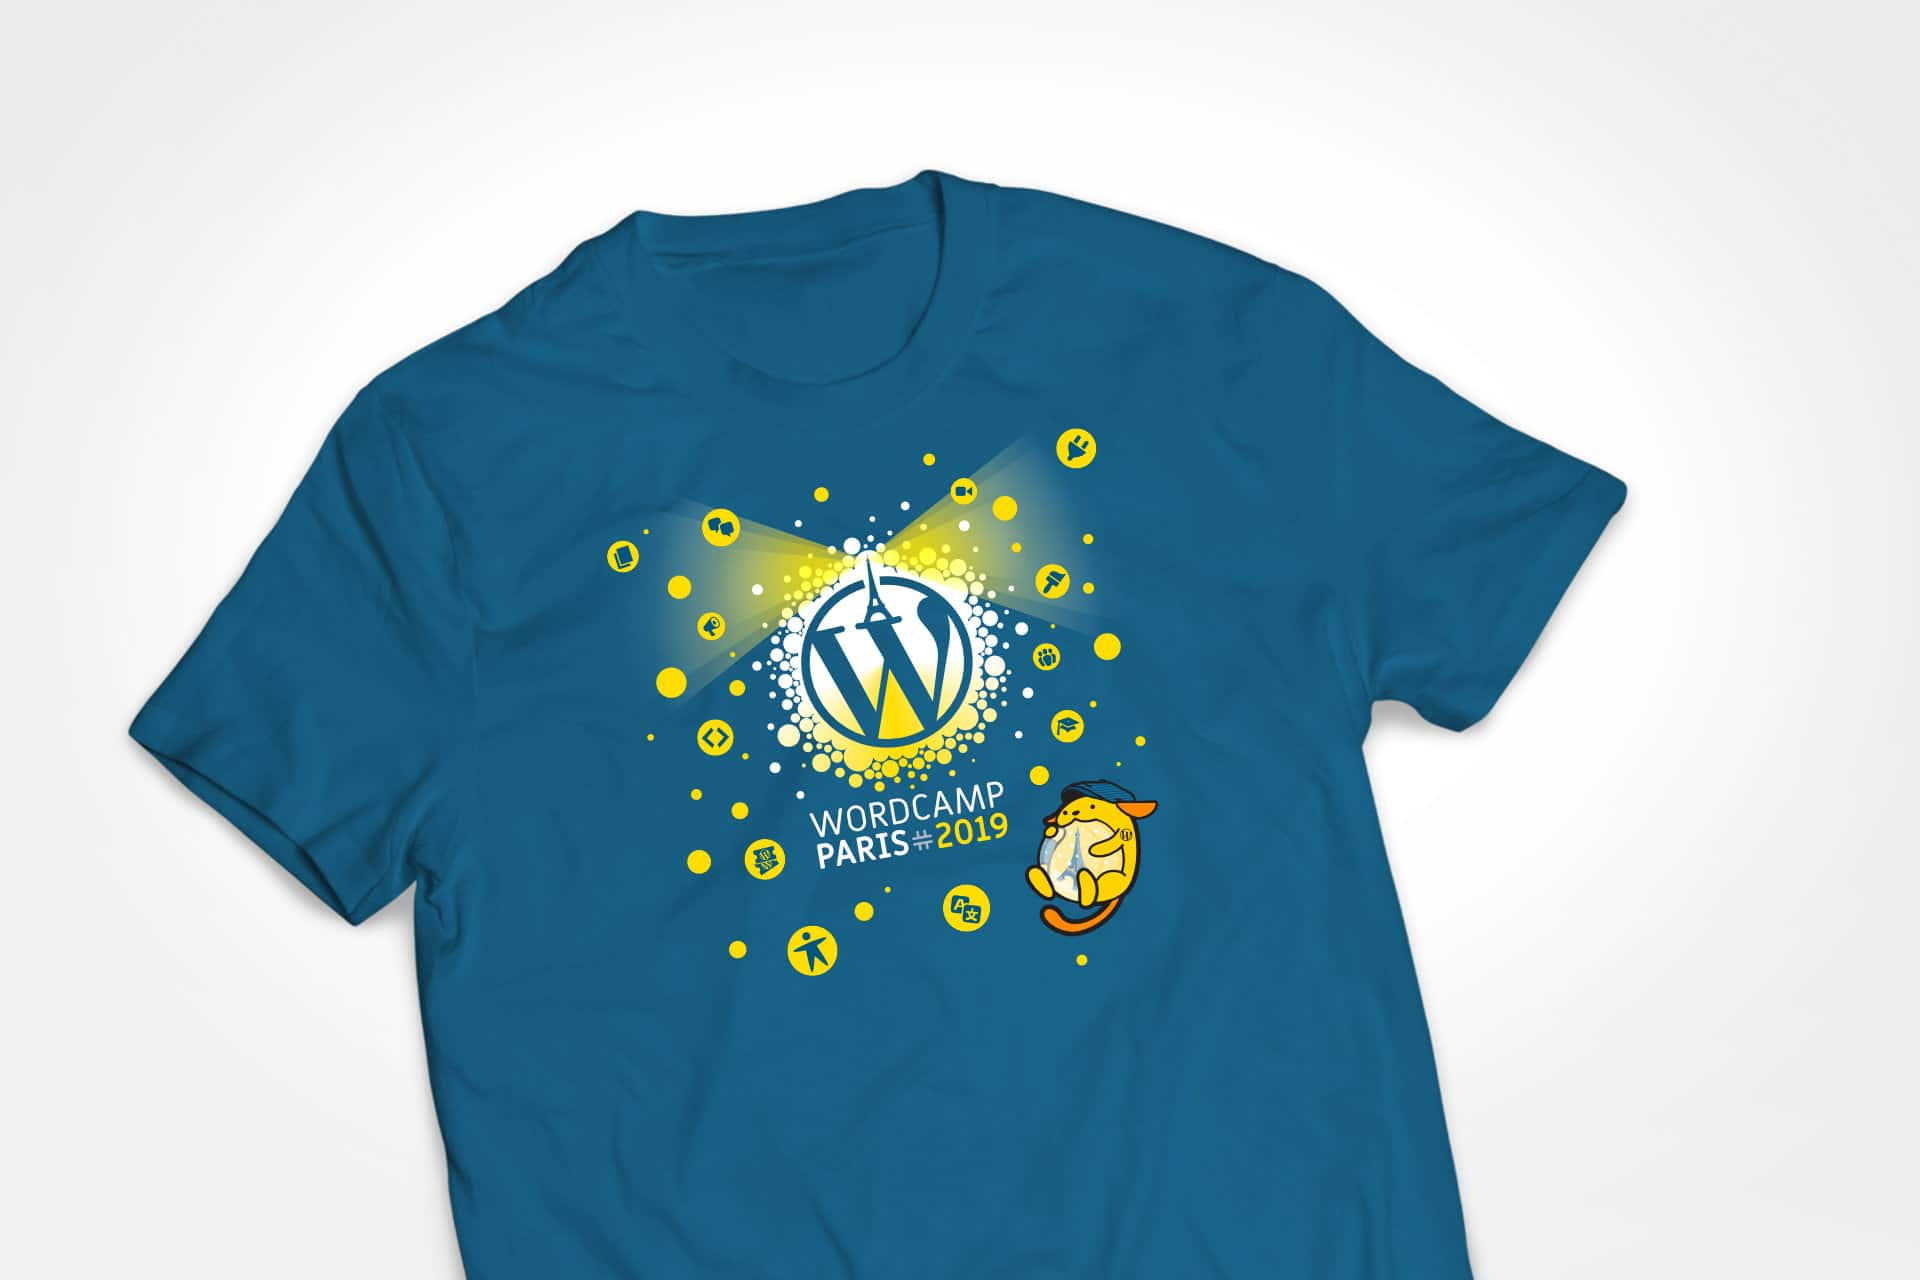 tshirt wordcamp paris 2019